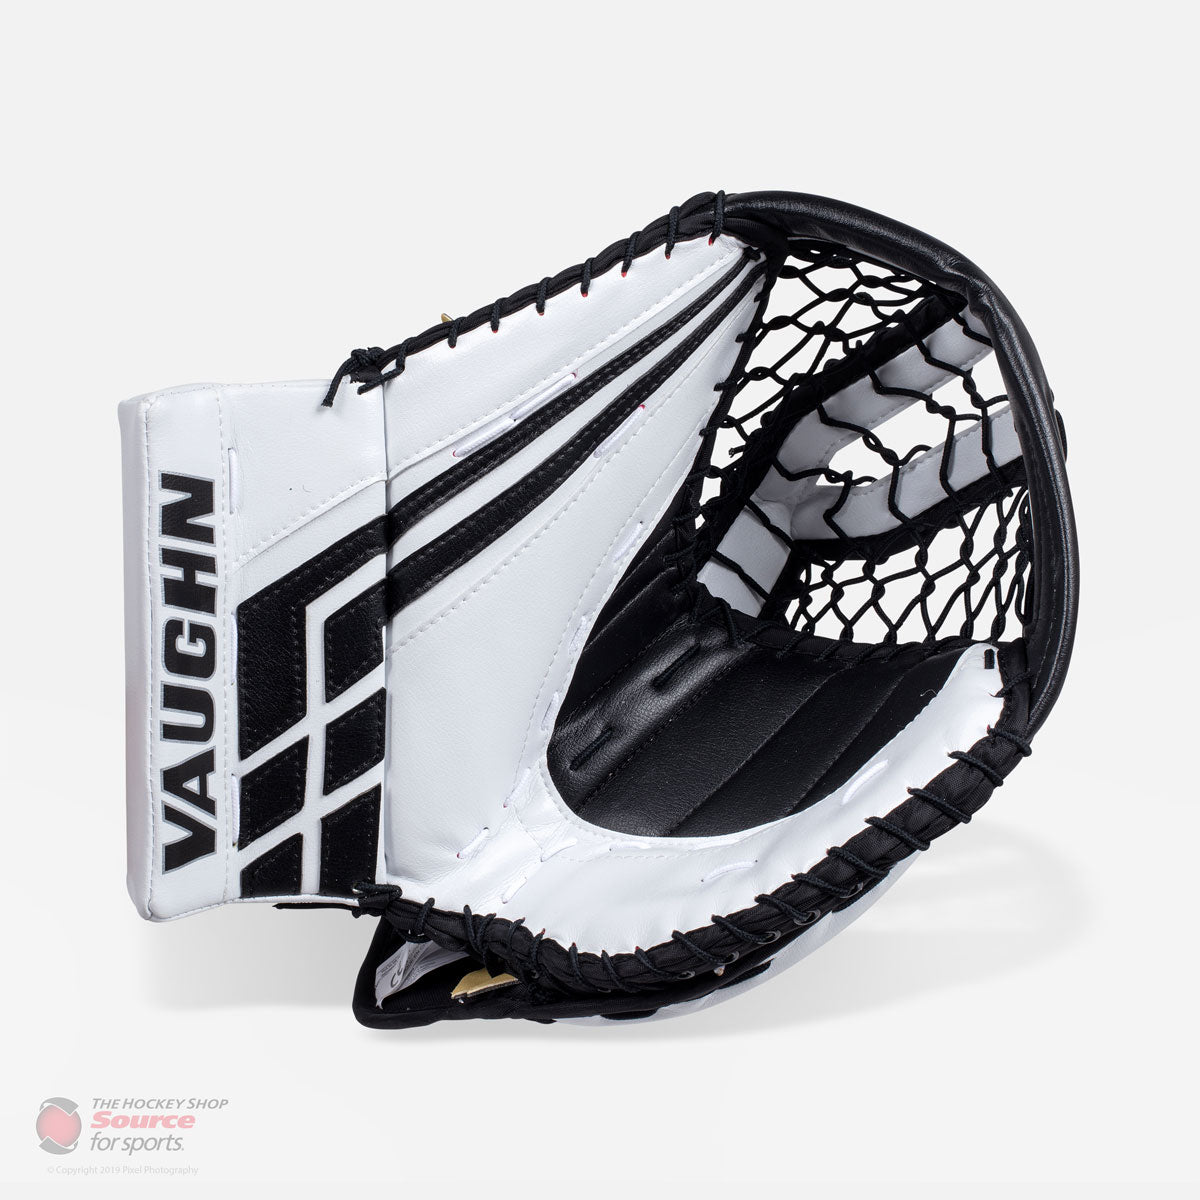 Vaughn Velocity VE8 Pro Senior Goalie Catcher